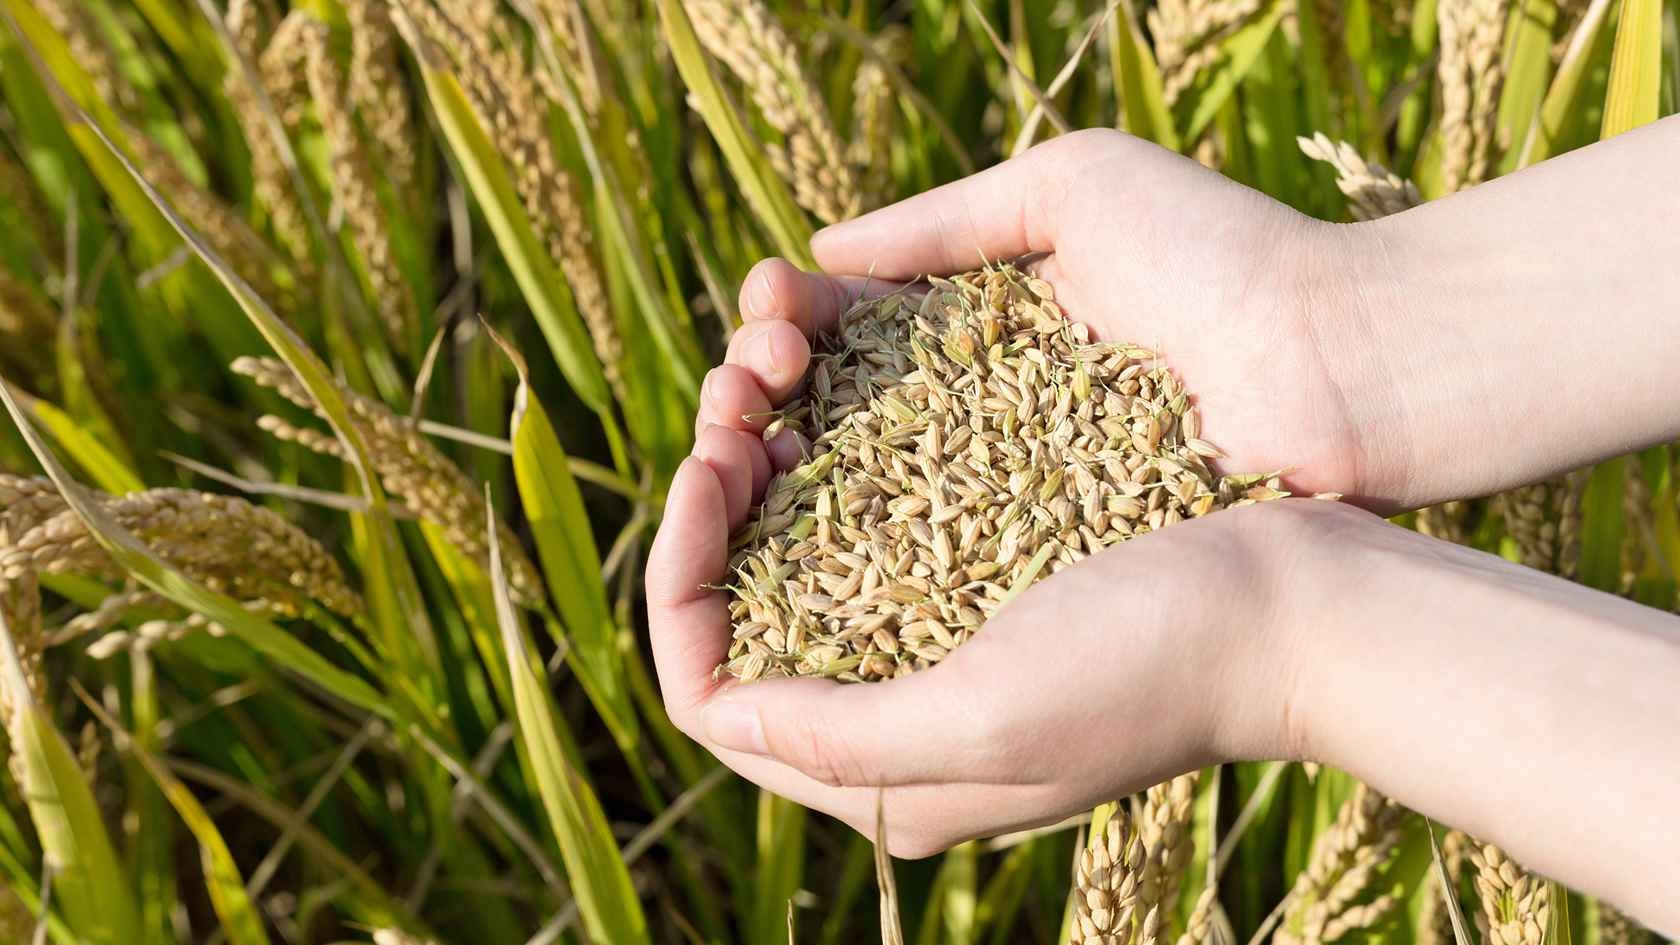 China's agriculture expands steadily